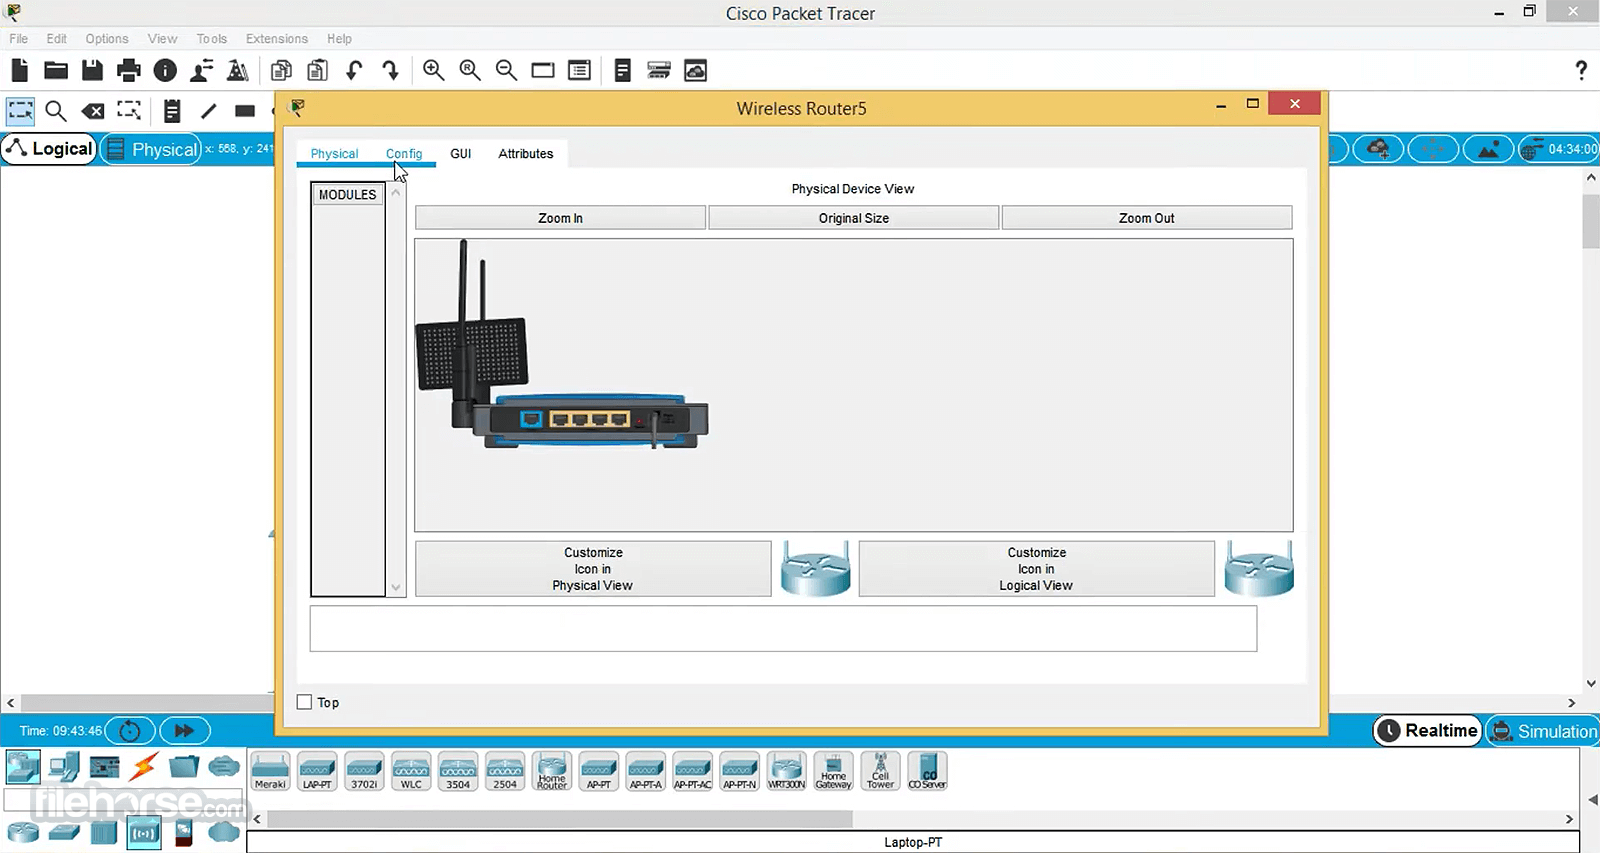 Cisco Packet Tracer 7.0 (32-bit) Captura de Pantalla 2